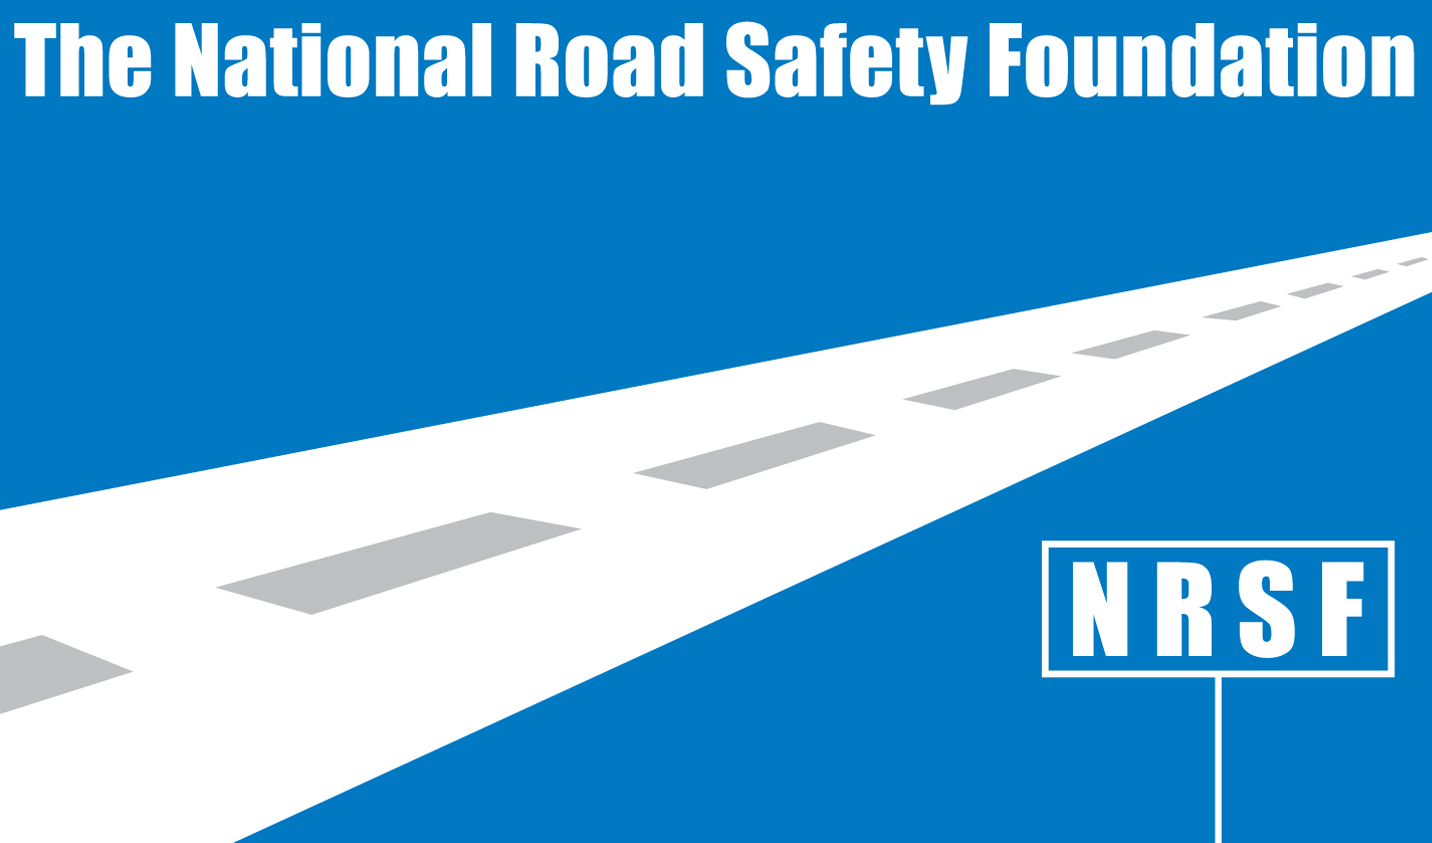 NRSF Logo, highway safety champions